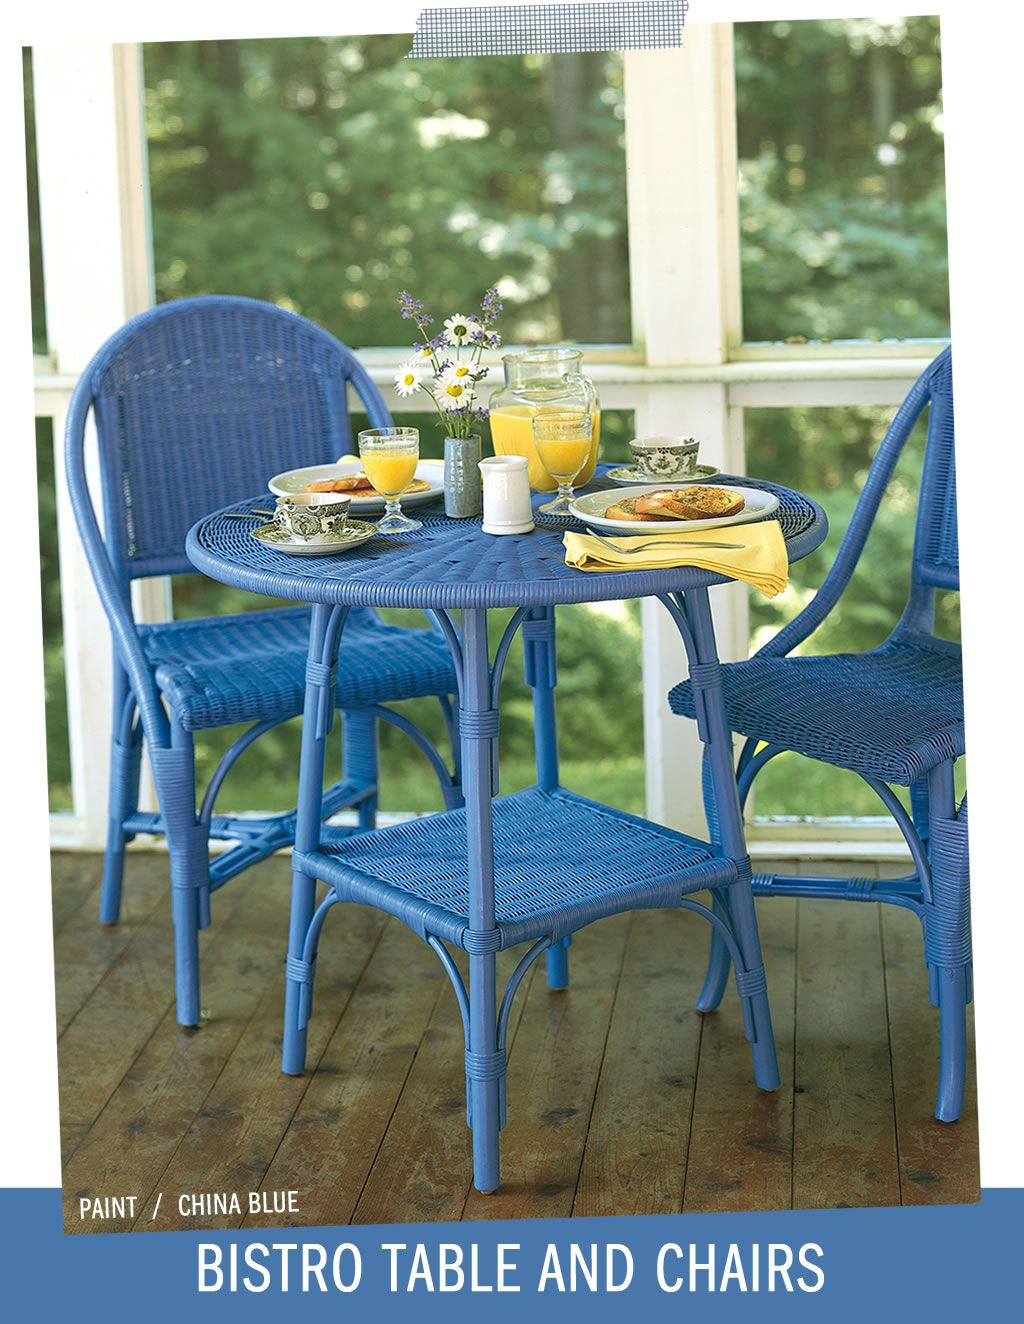 Wicker by Maine Cottage | Bistro Table & Chairs in China Blue ...